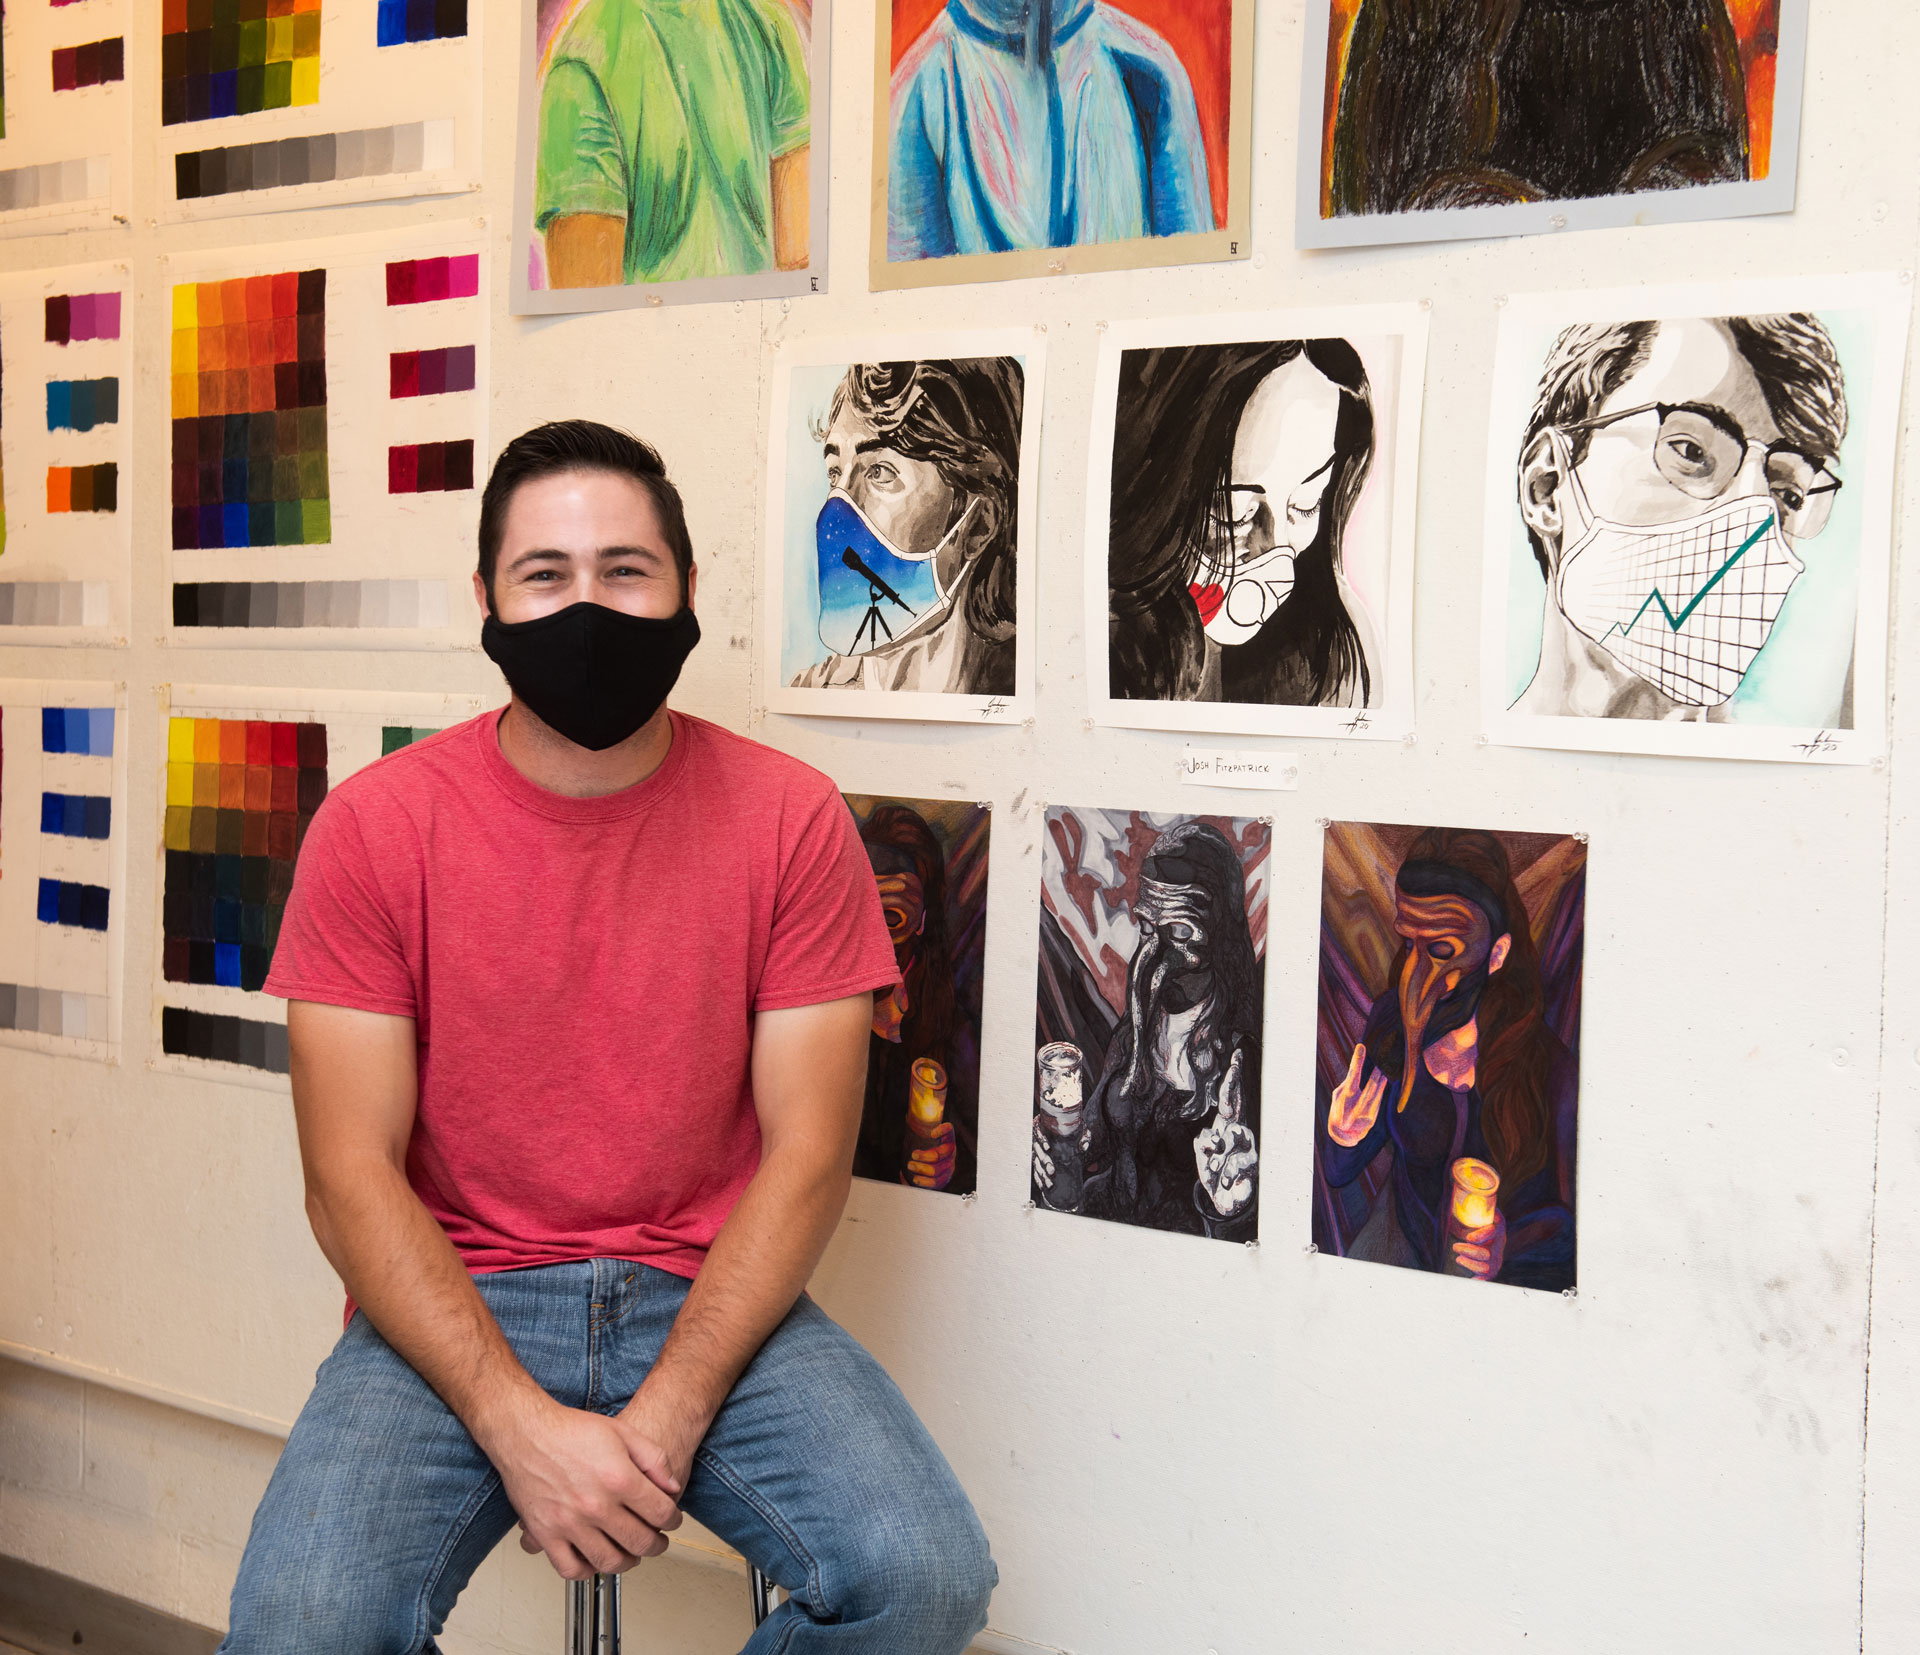 portrait of SCSU student artist and class of 2020 graduate Joshua Fitzpatrick with his work